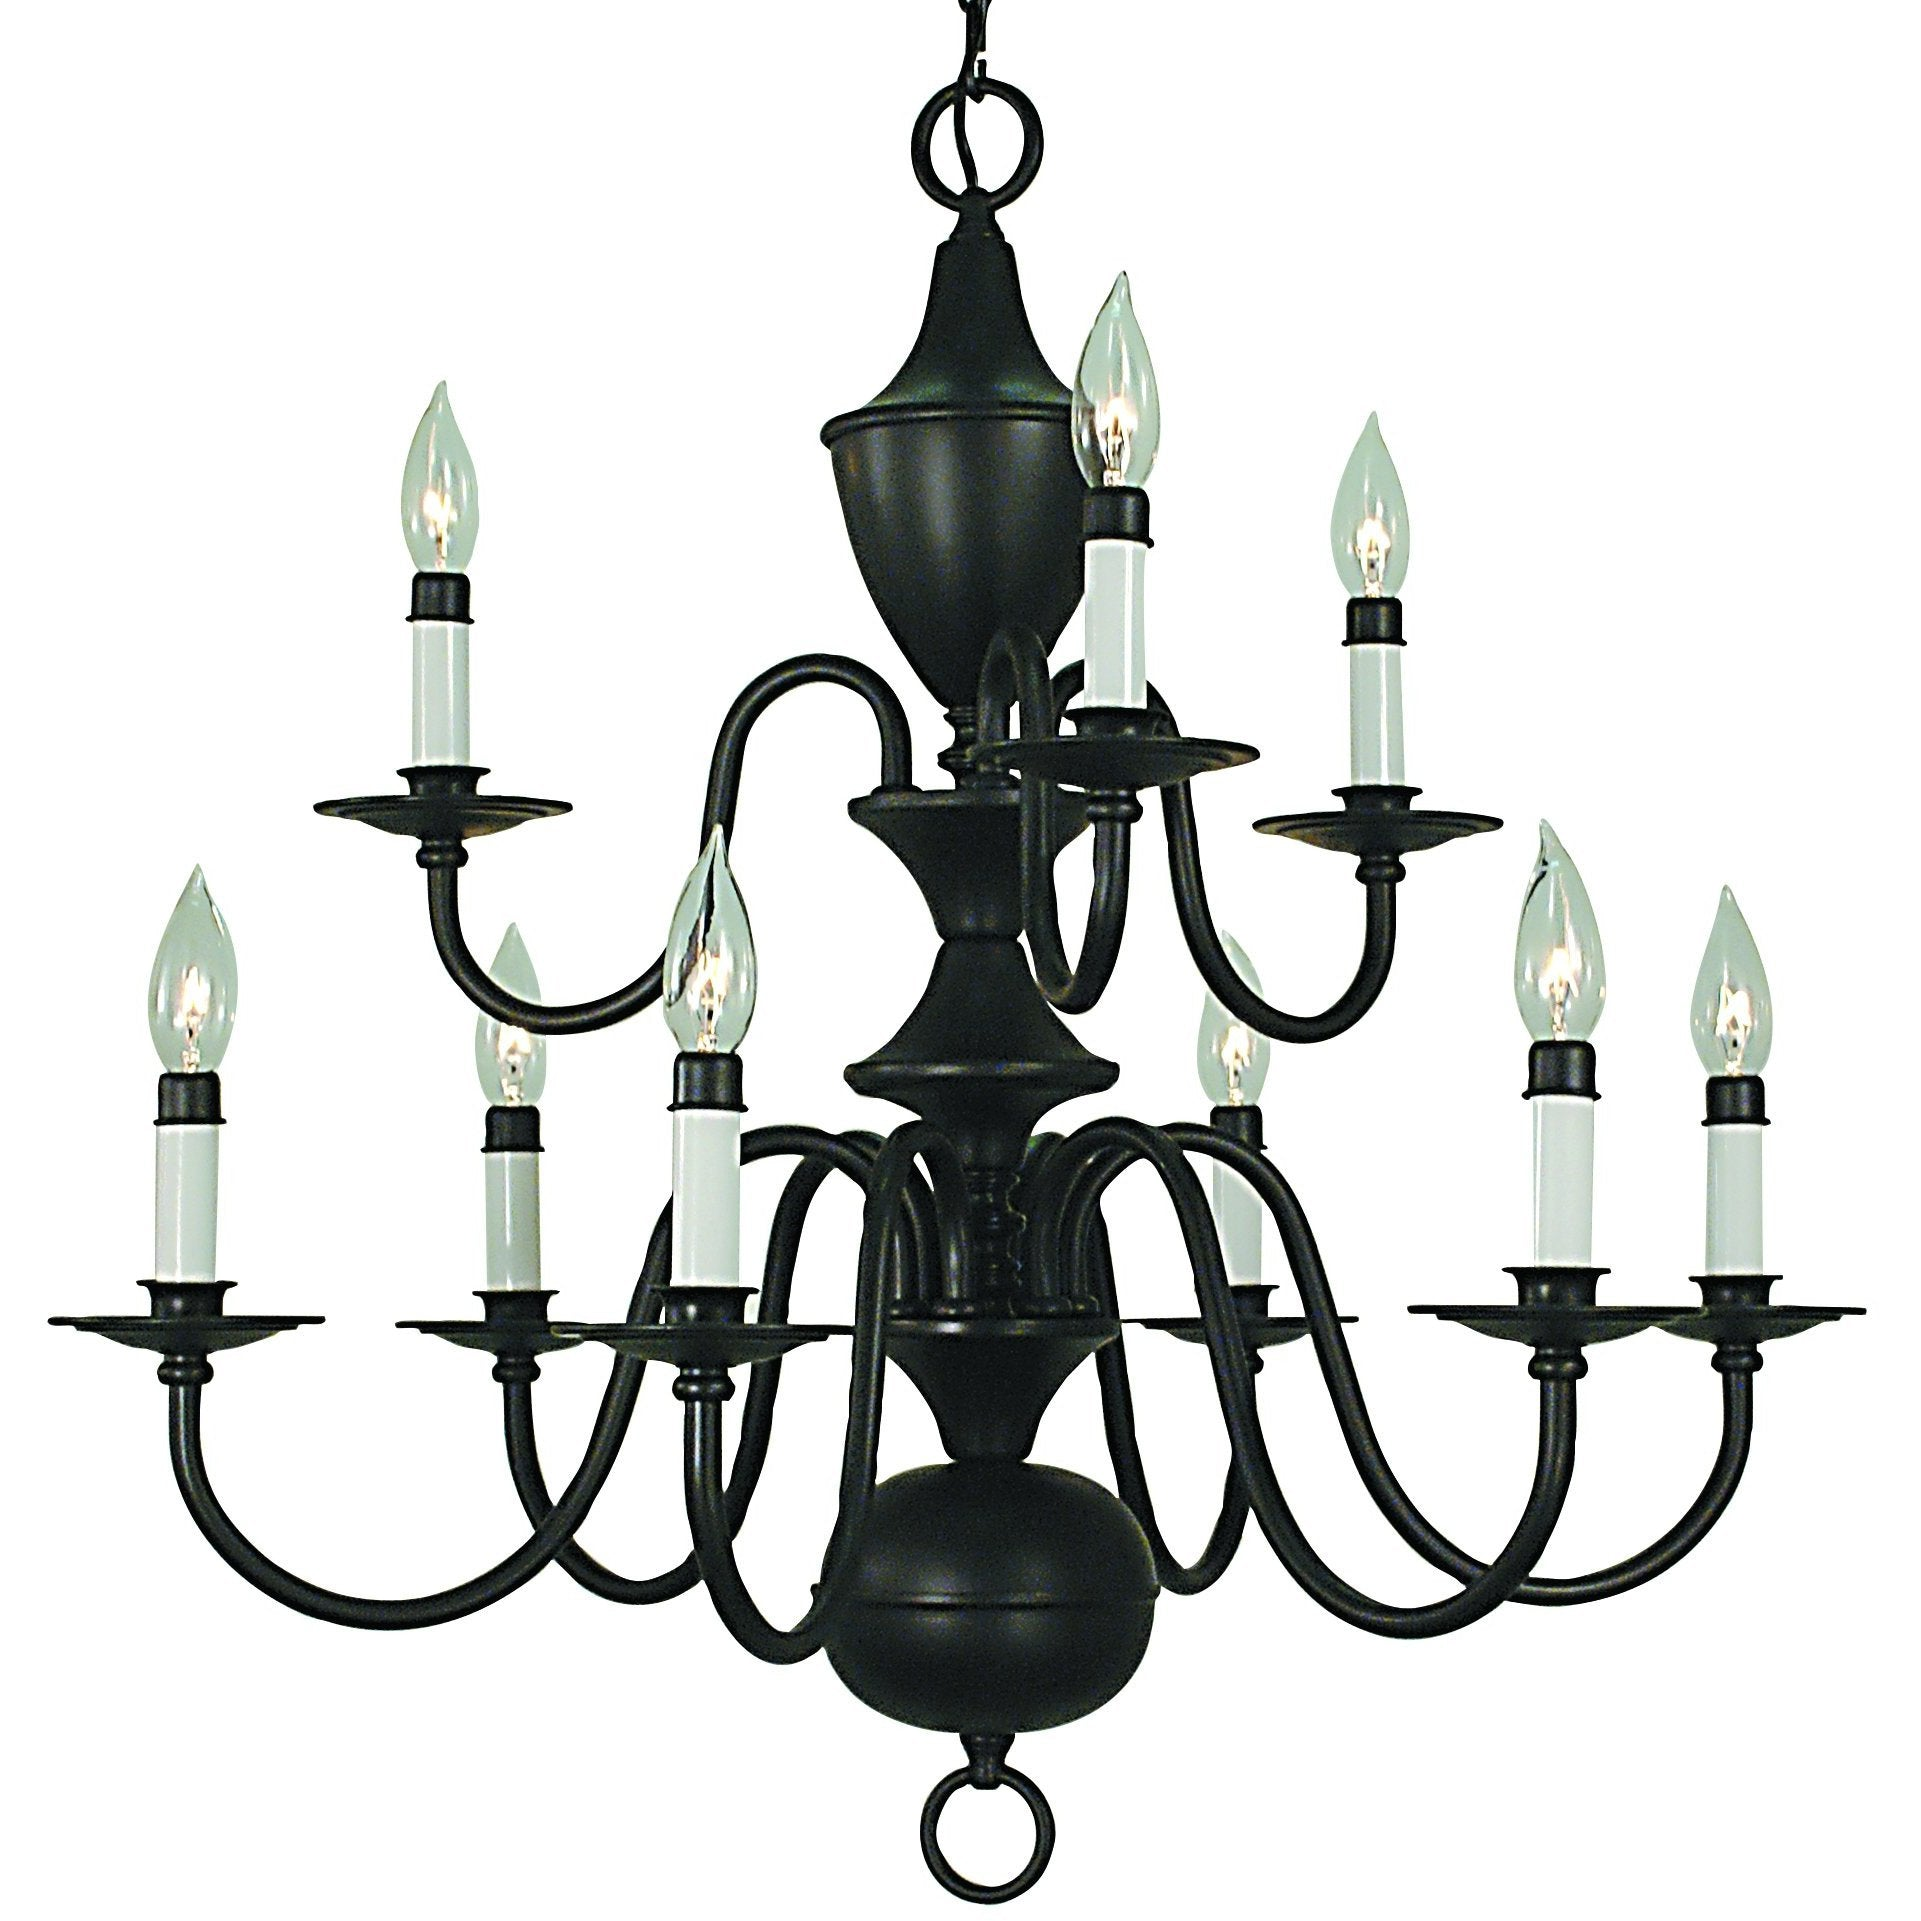 Framburg Chandeliers Matte Black 9-Light Matte Black Jamestown Dining Chandelier by Framburg 2529